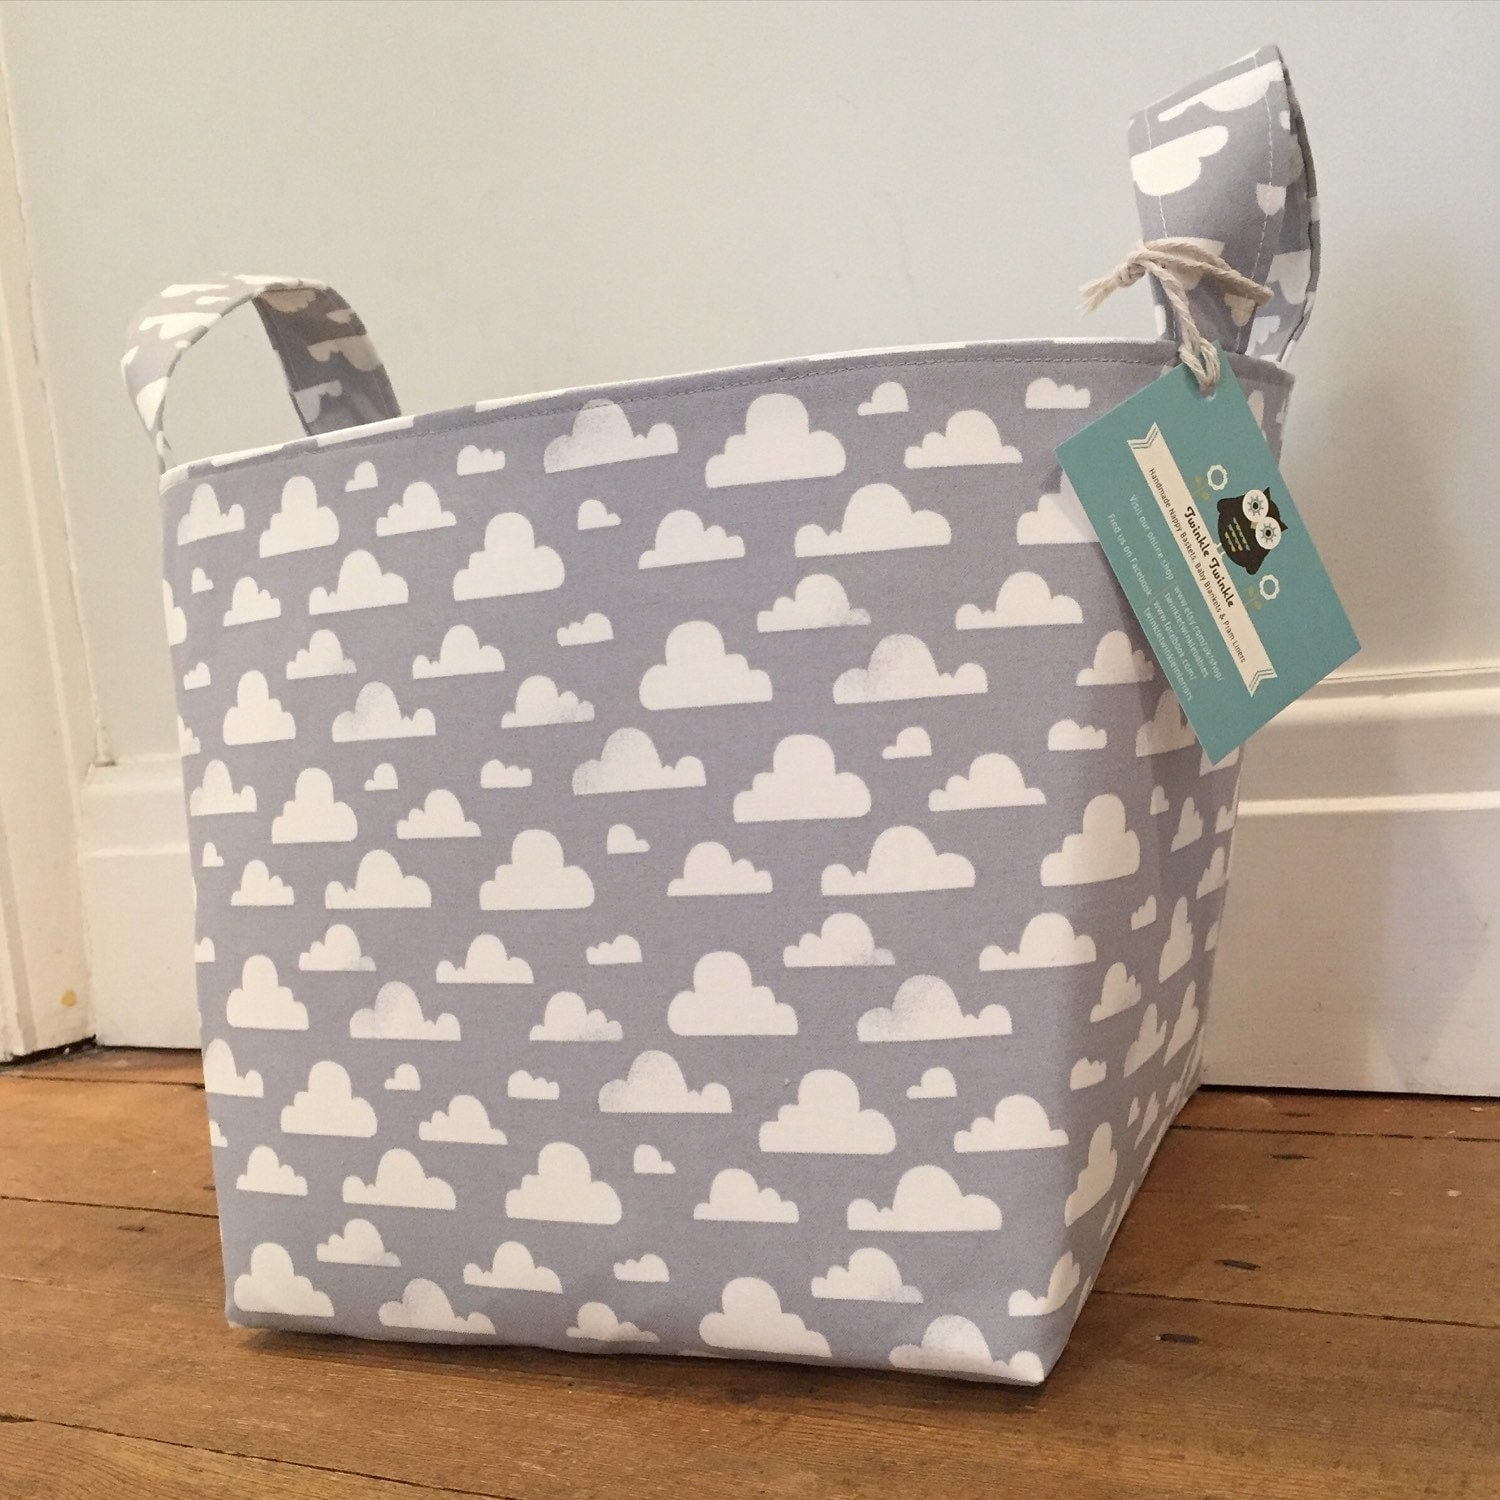 Pitter Patter Fabric Basket Nappy Basket Diaper Caddy